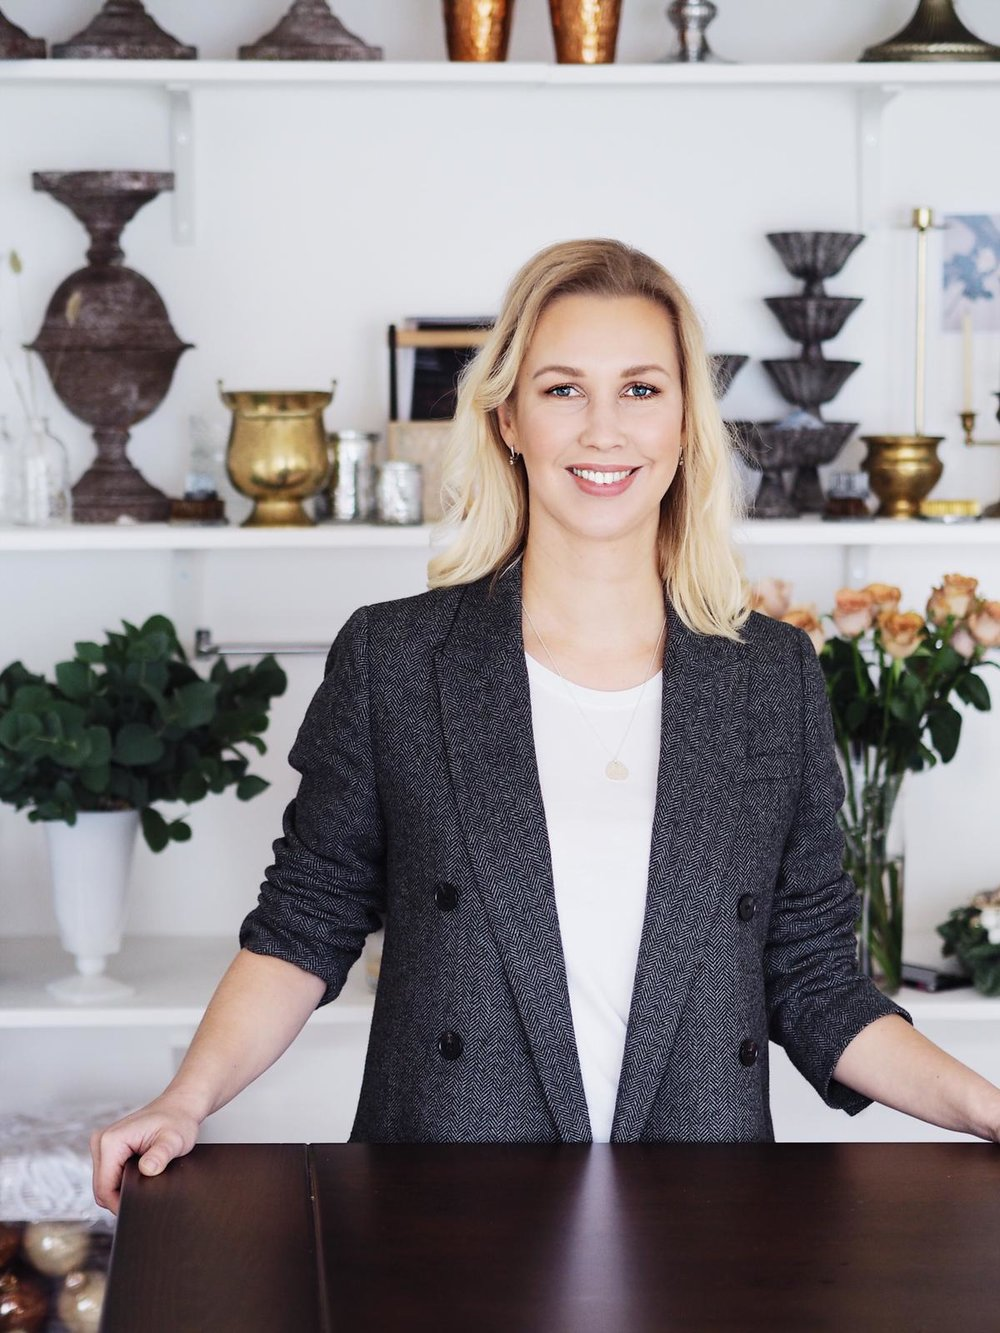 """Katerina - Co-Founder & General DirectorKaterina directs the operational side of the business, sourcing the finest floral merchants, engaging one to one with clients and ensuring Fine Stems exceeds your most discerning expectations. She met her business partner Kate through planning her own wedding 3 years ago. Together, they have been working both as friends and partners, constantly exchanging ideas, inspiration and new plans for Fine Stems.Katerina's approach to life is perhaps best described in Mary Anne Roadacher-Hershey's words: """"Live with intention. Walk to the edge. Listen hard. Practise wellness. Play with abandon. Laugh. Choose with no regret. Do what you love, and live as if this is all there is"""". Her children are her greatest inspiration and she loves fine food, good company, great music and a wonderful atmosphere… the occasional glass of wine is also on the list!"""